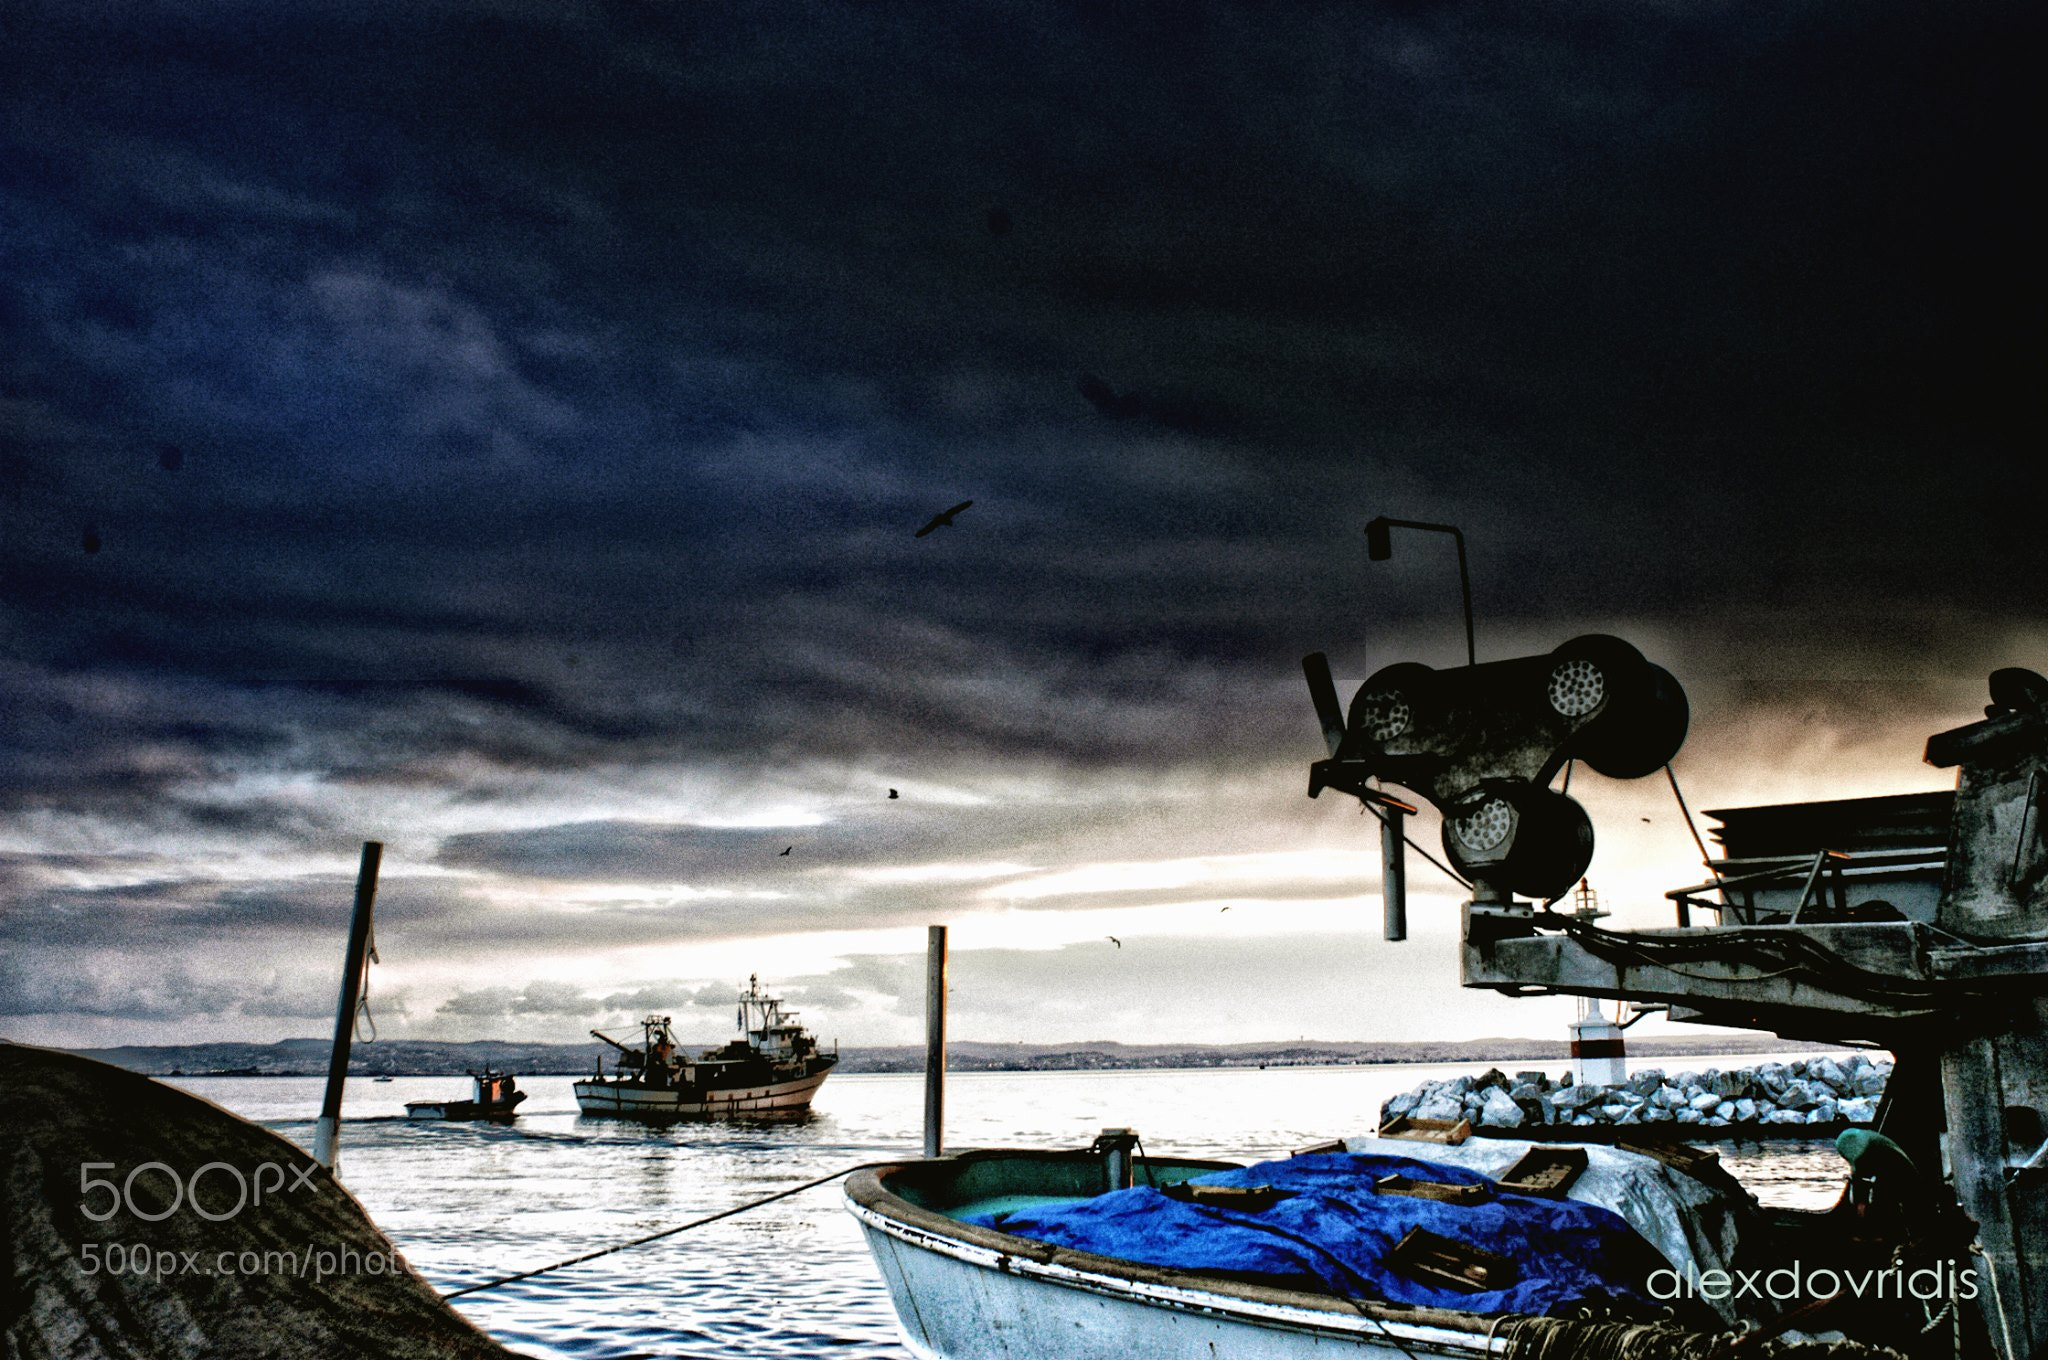 Photograph Fishing boats by alex dovridis on 500px